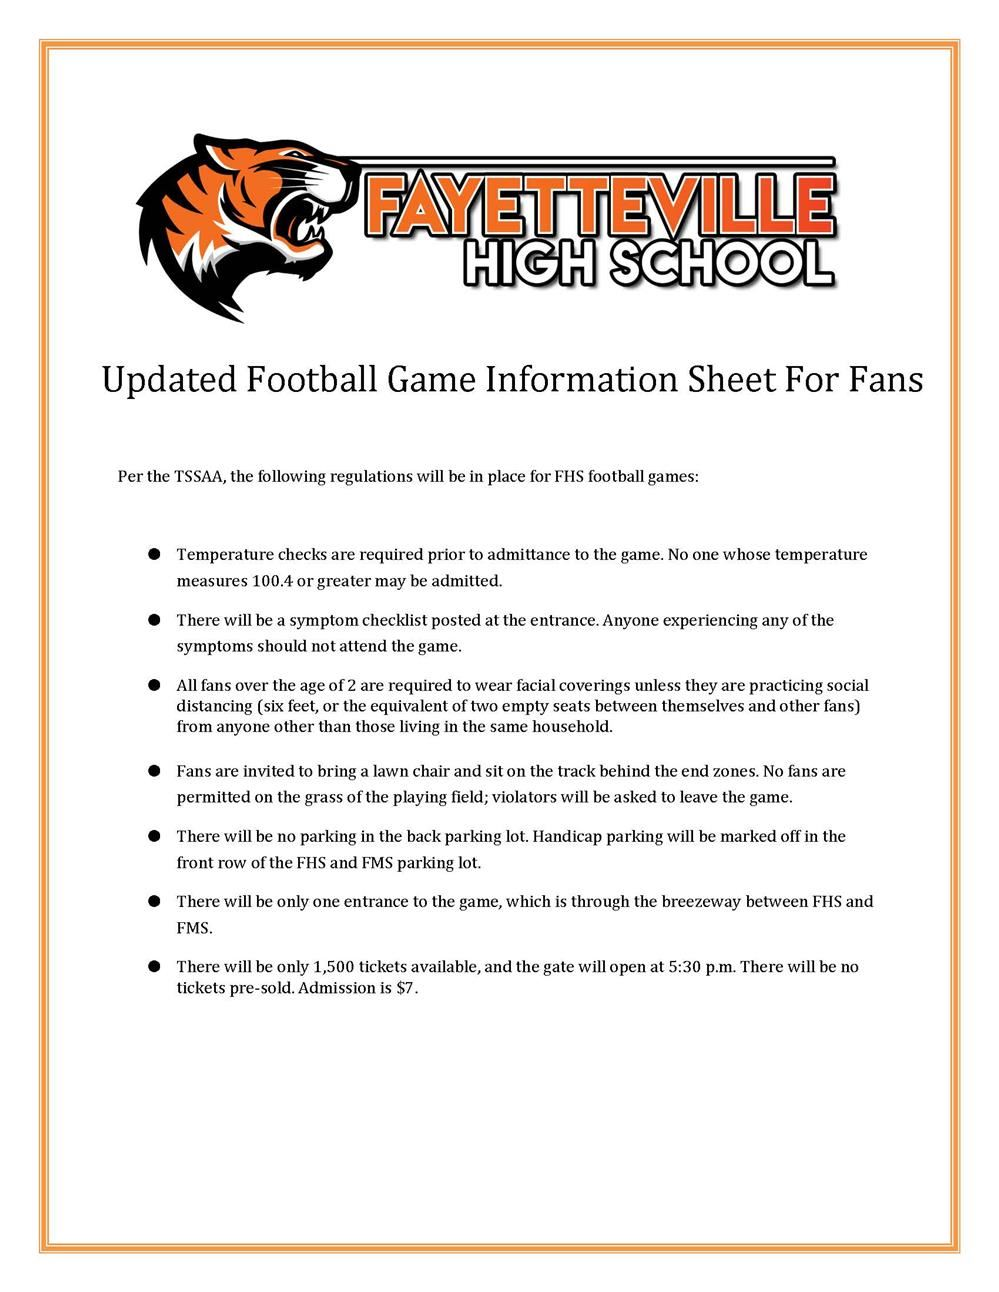 FHS info about football games